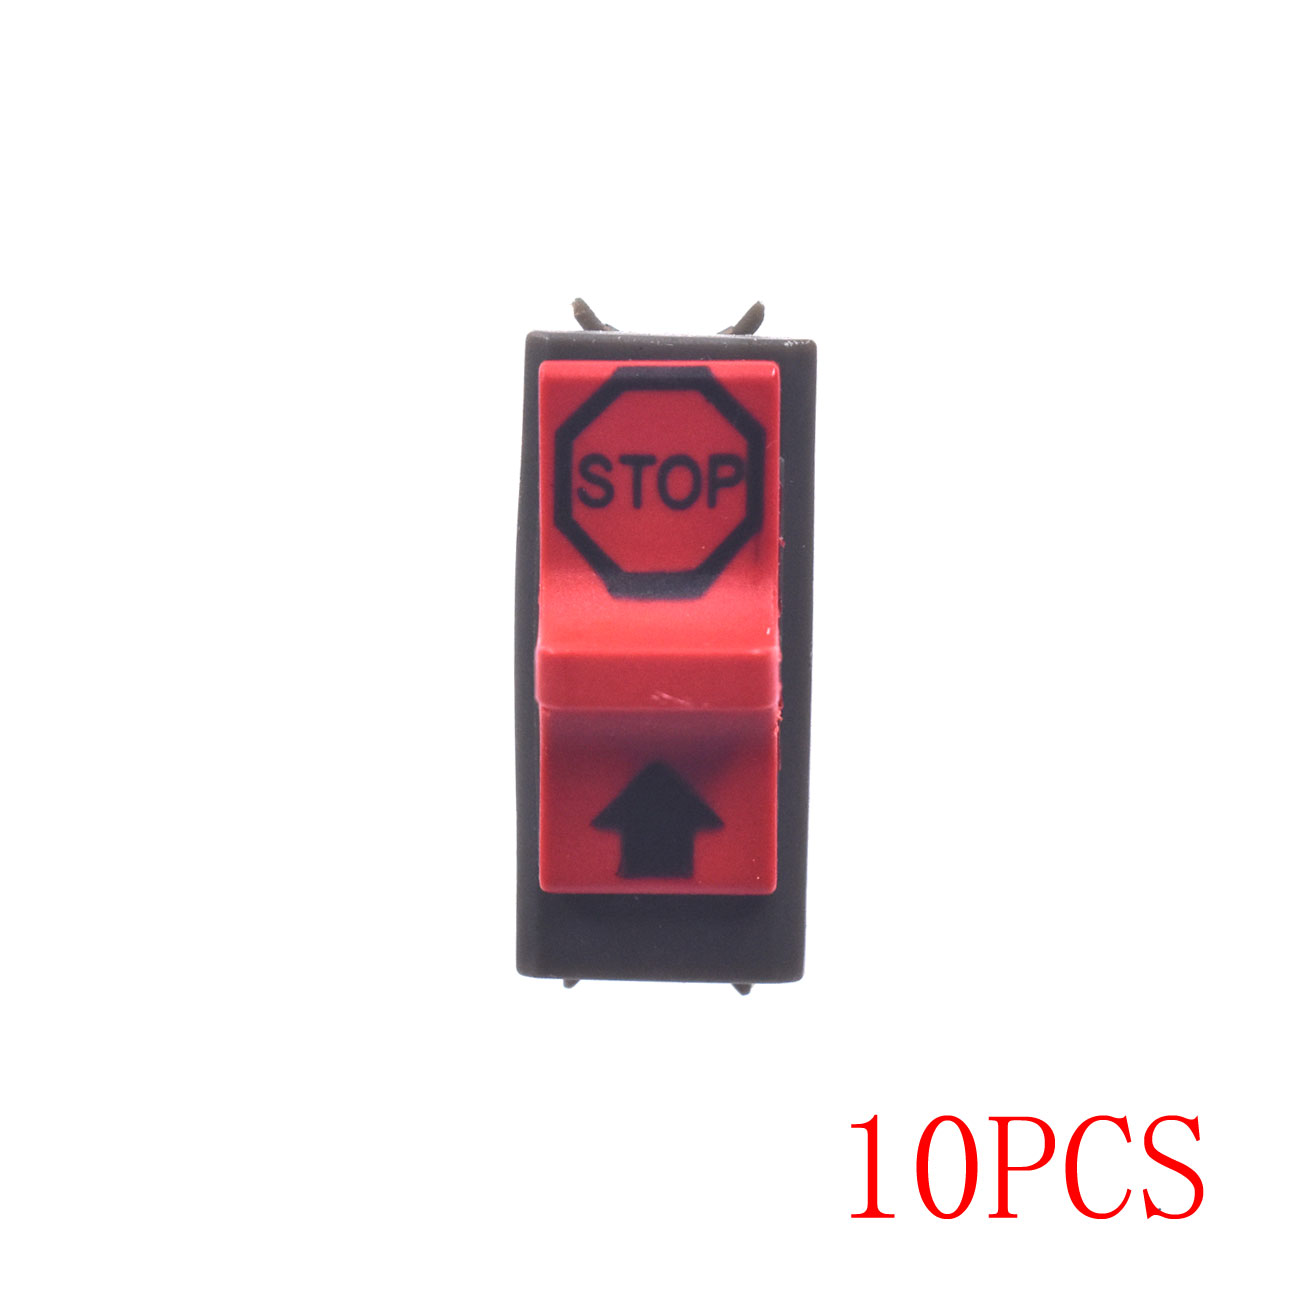 Chainsaw Kill Stop Switch On-off Fit For Husqvarna 365 371 372 372XP 336